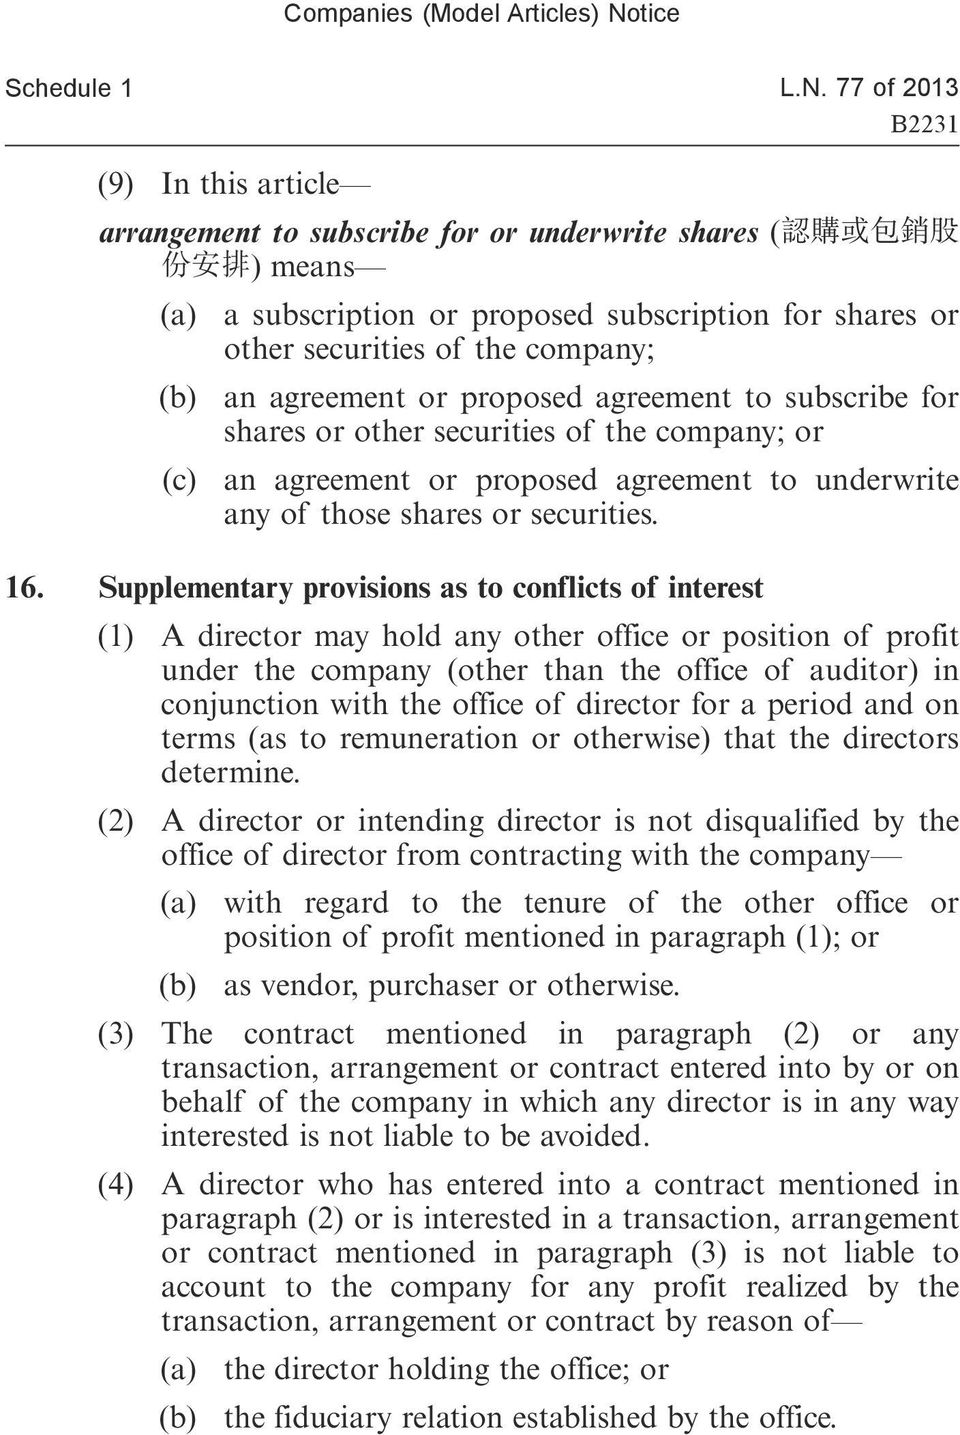 Supplementary provisions as to conflicts of interest (1) A director may hold any other office or position of profit under the company (other than the office of auditor) in conjunction with the office